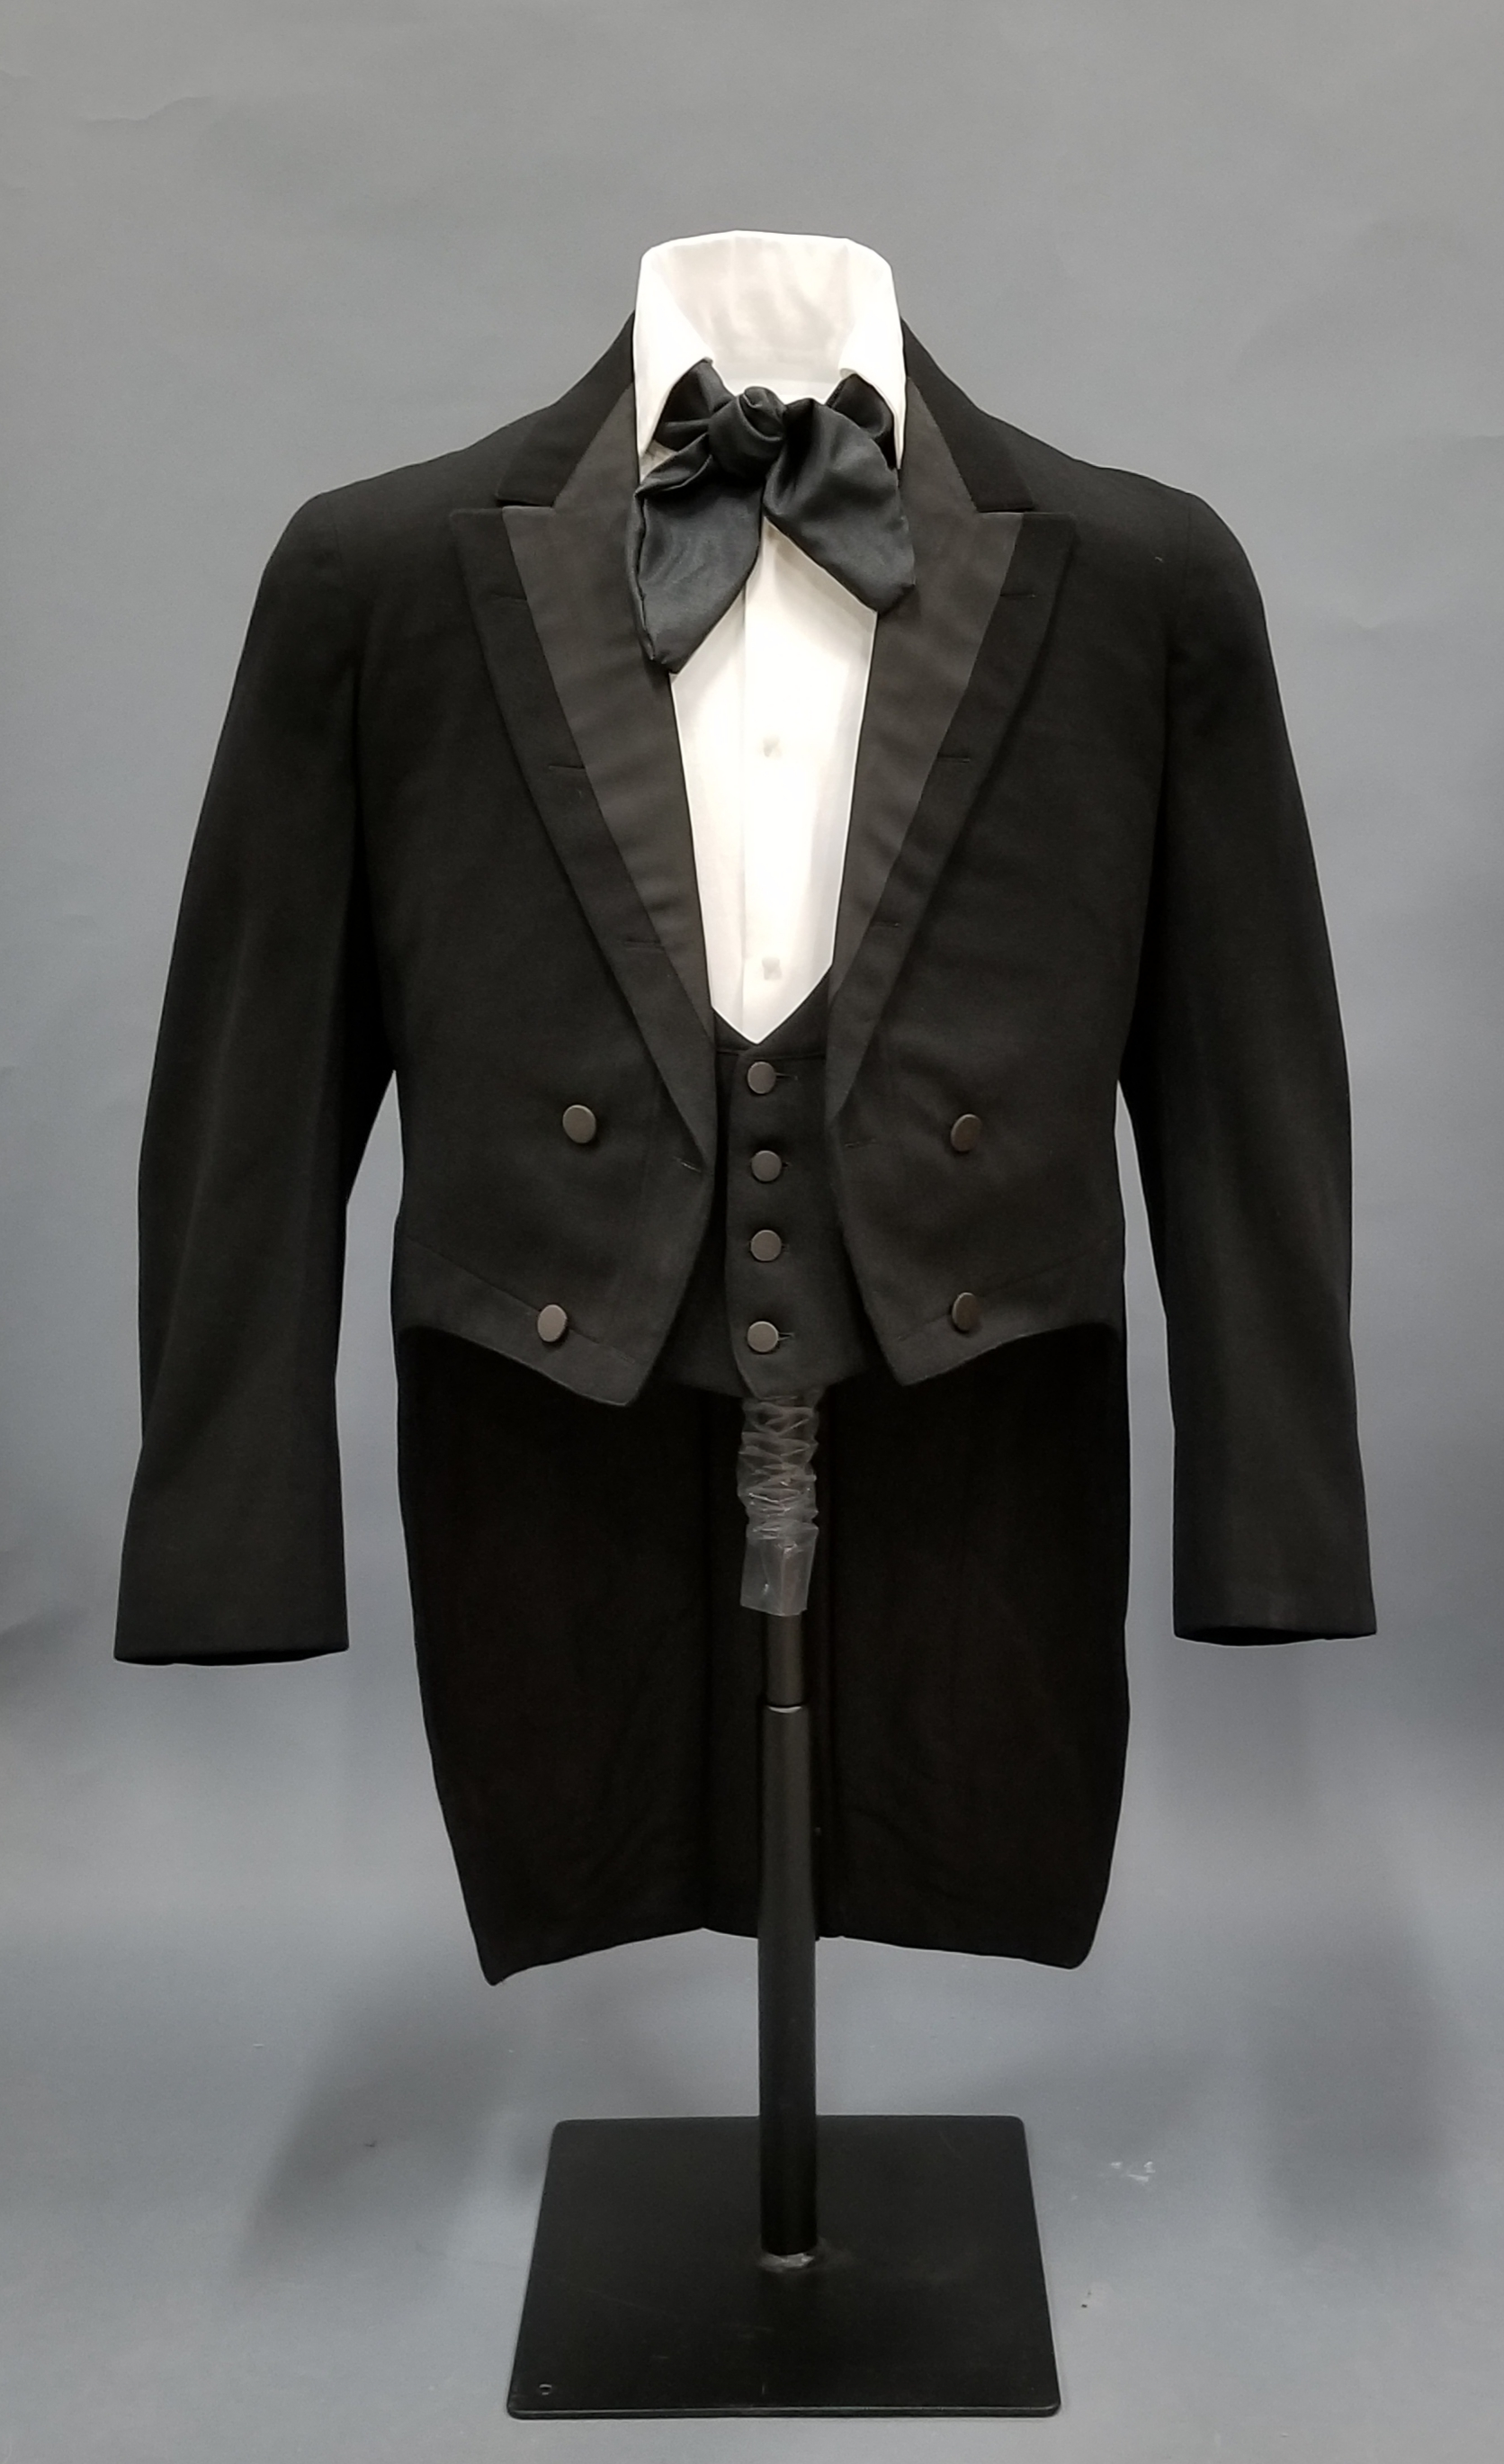 William Brownlow wore this coat and vest at his gubernatorial inauguration in 1865.